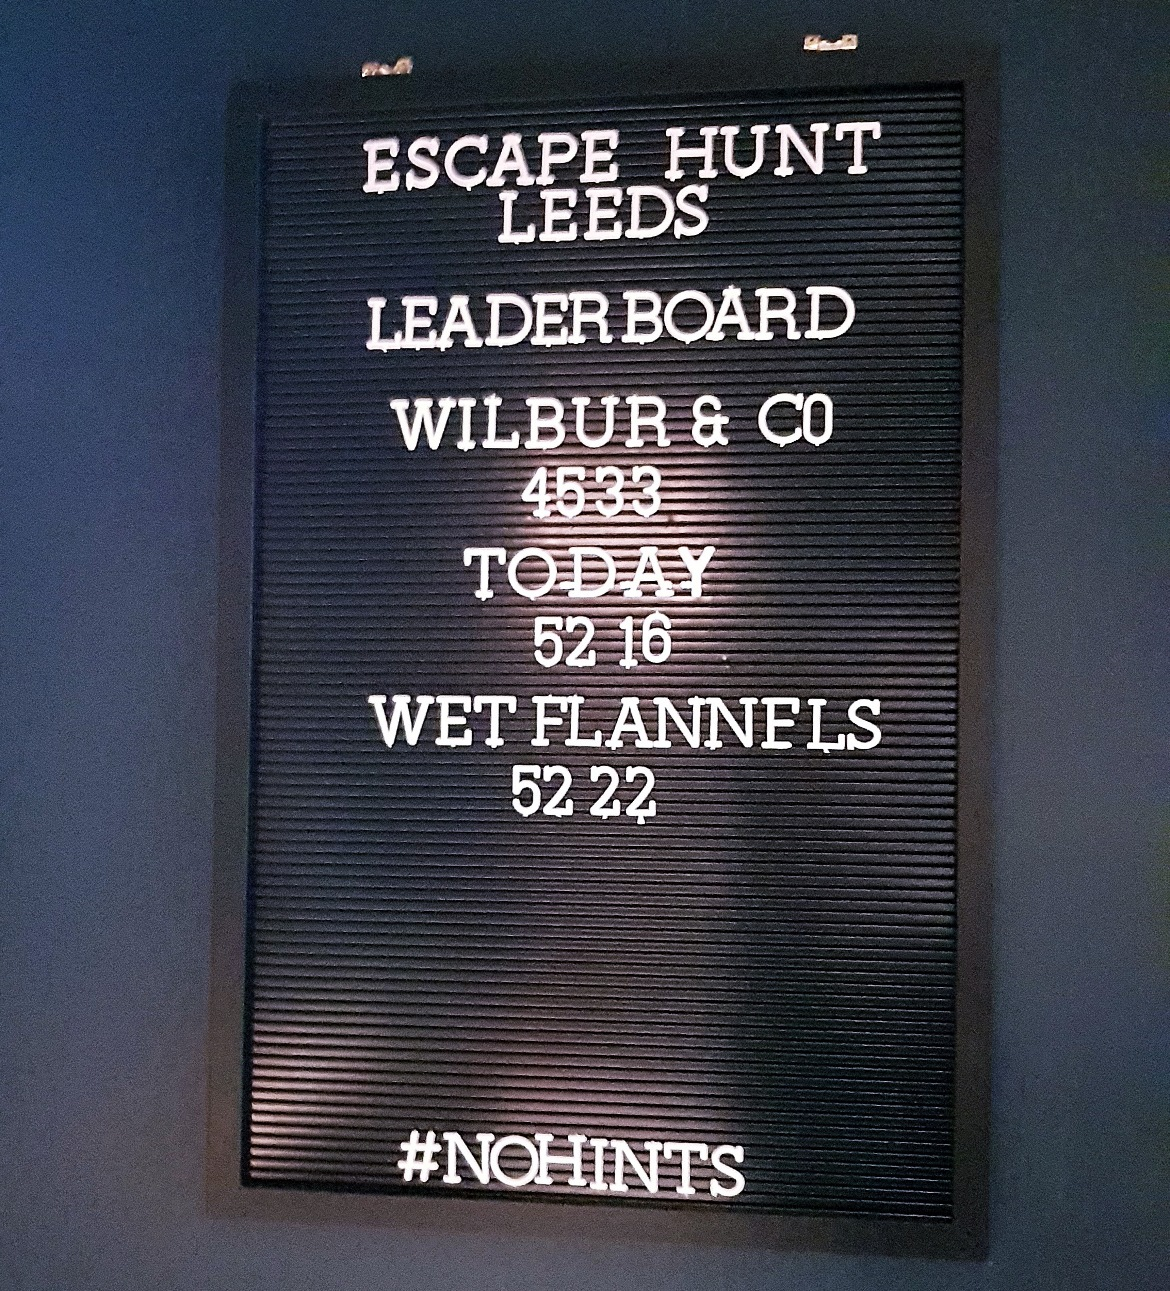 Top 3 leader board before - Our Finest Hour, escape room by Escape Hunt Leeds, review by BeckyBecky Blogs